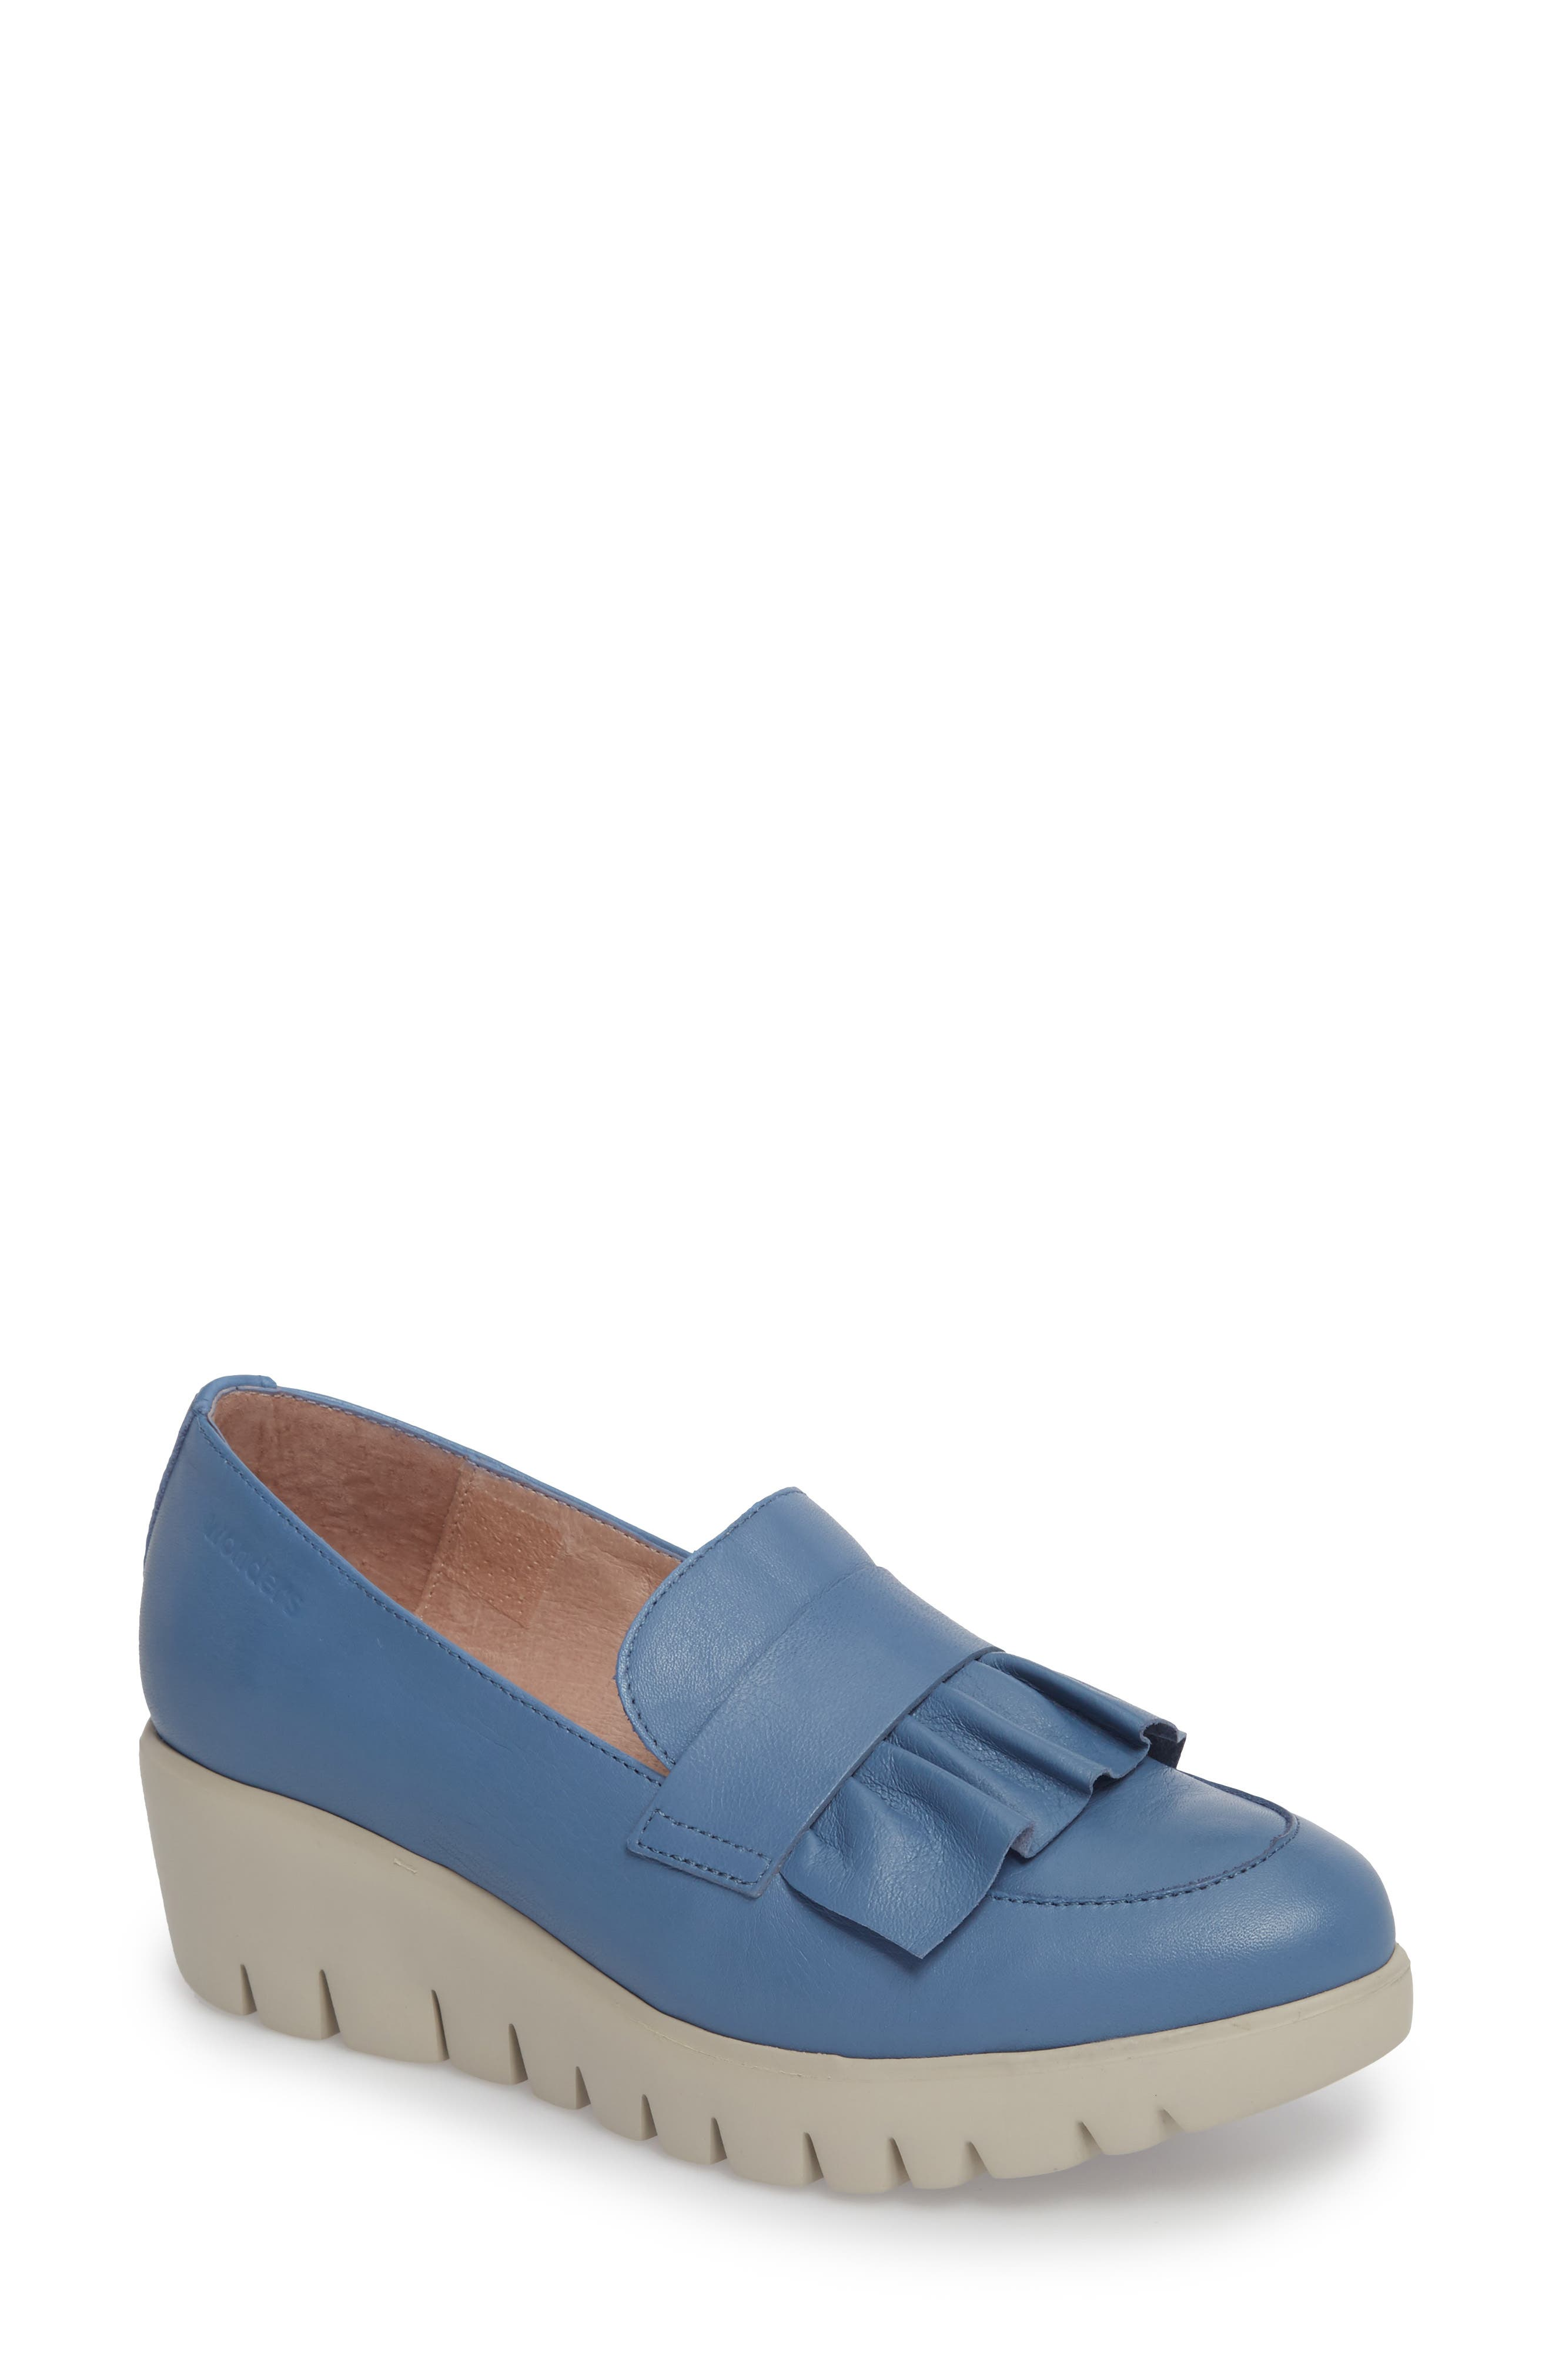 WONDERS Loafer Wedge in Jeans Leather